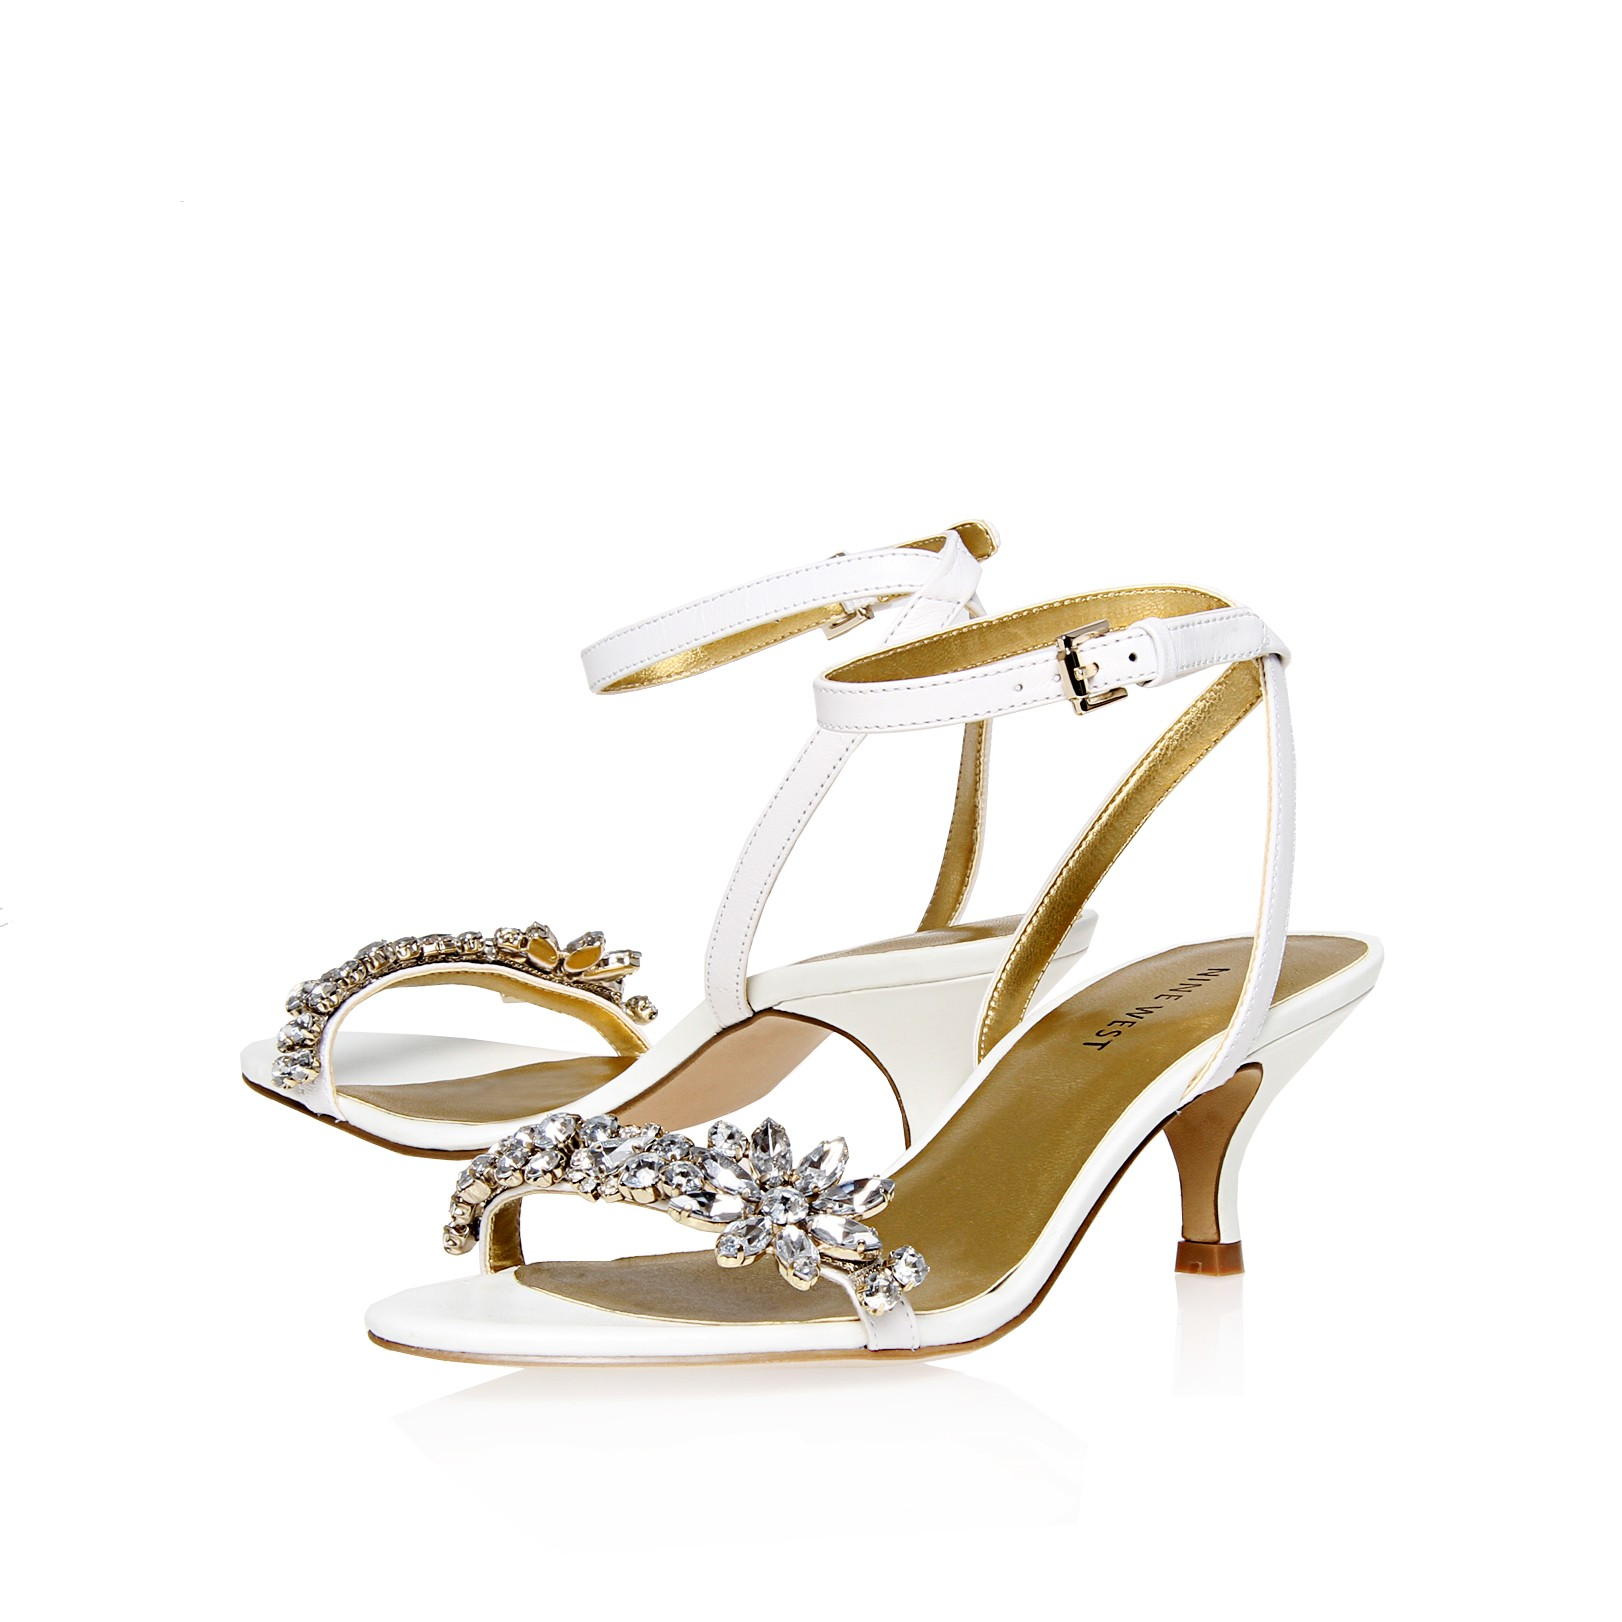 Wedding Shoes To WOW With On Your Big Day